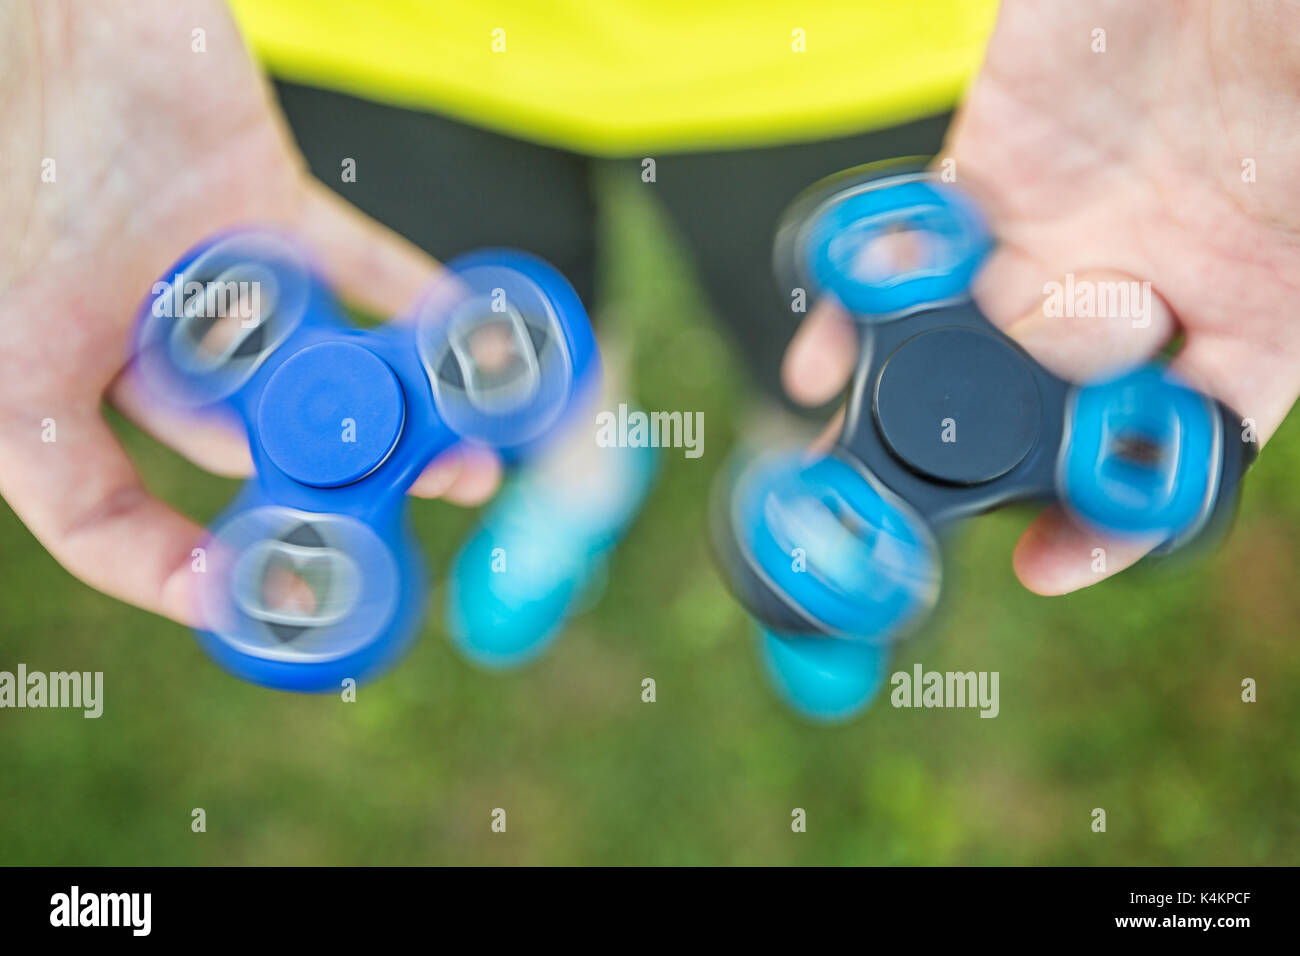 Girl holding blue and black fidget spinners in her hands, view from above; both gadgets spinning - Stock Image